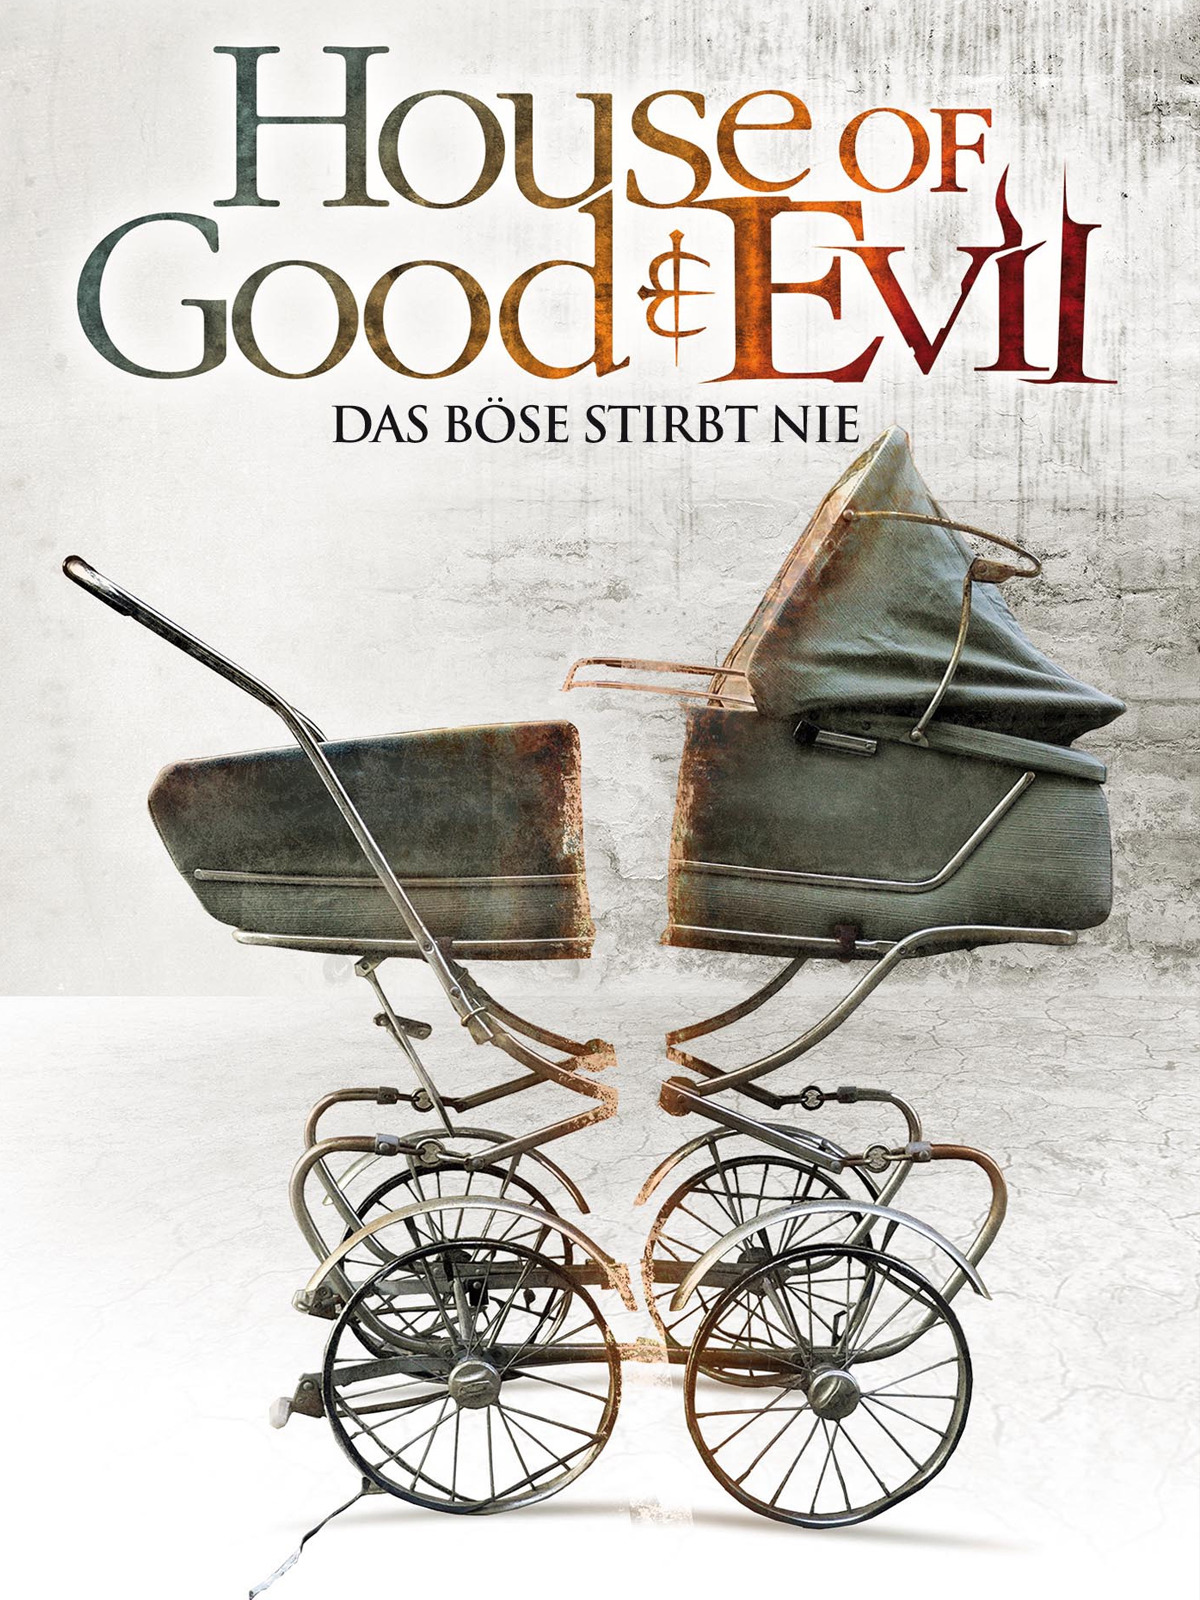 House of Good & Evil - Das Böse stirbt nie